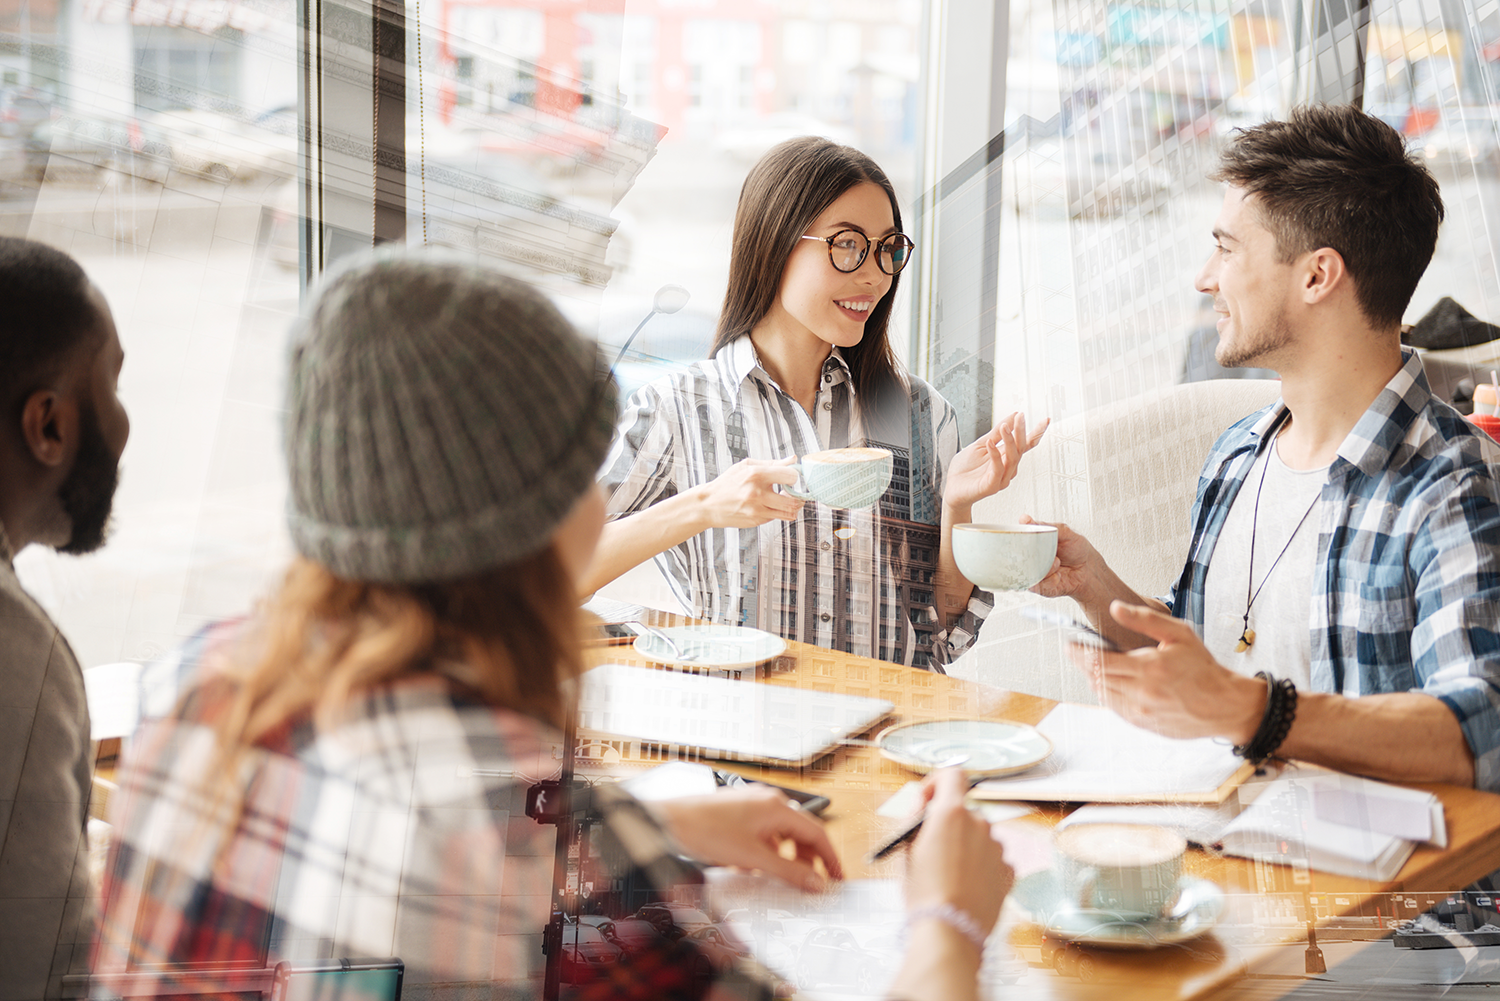 Millennial diners lack brand loyalty and are frugal from loaded student debt.